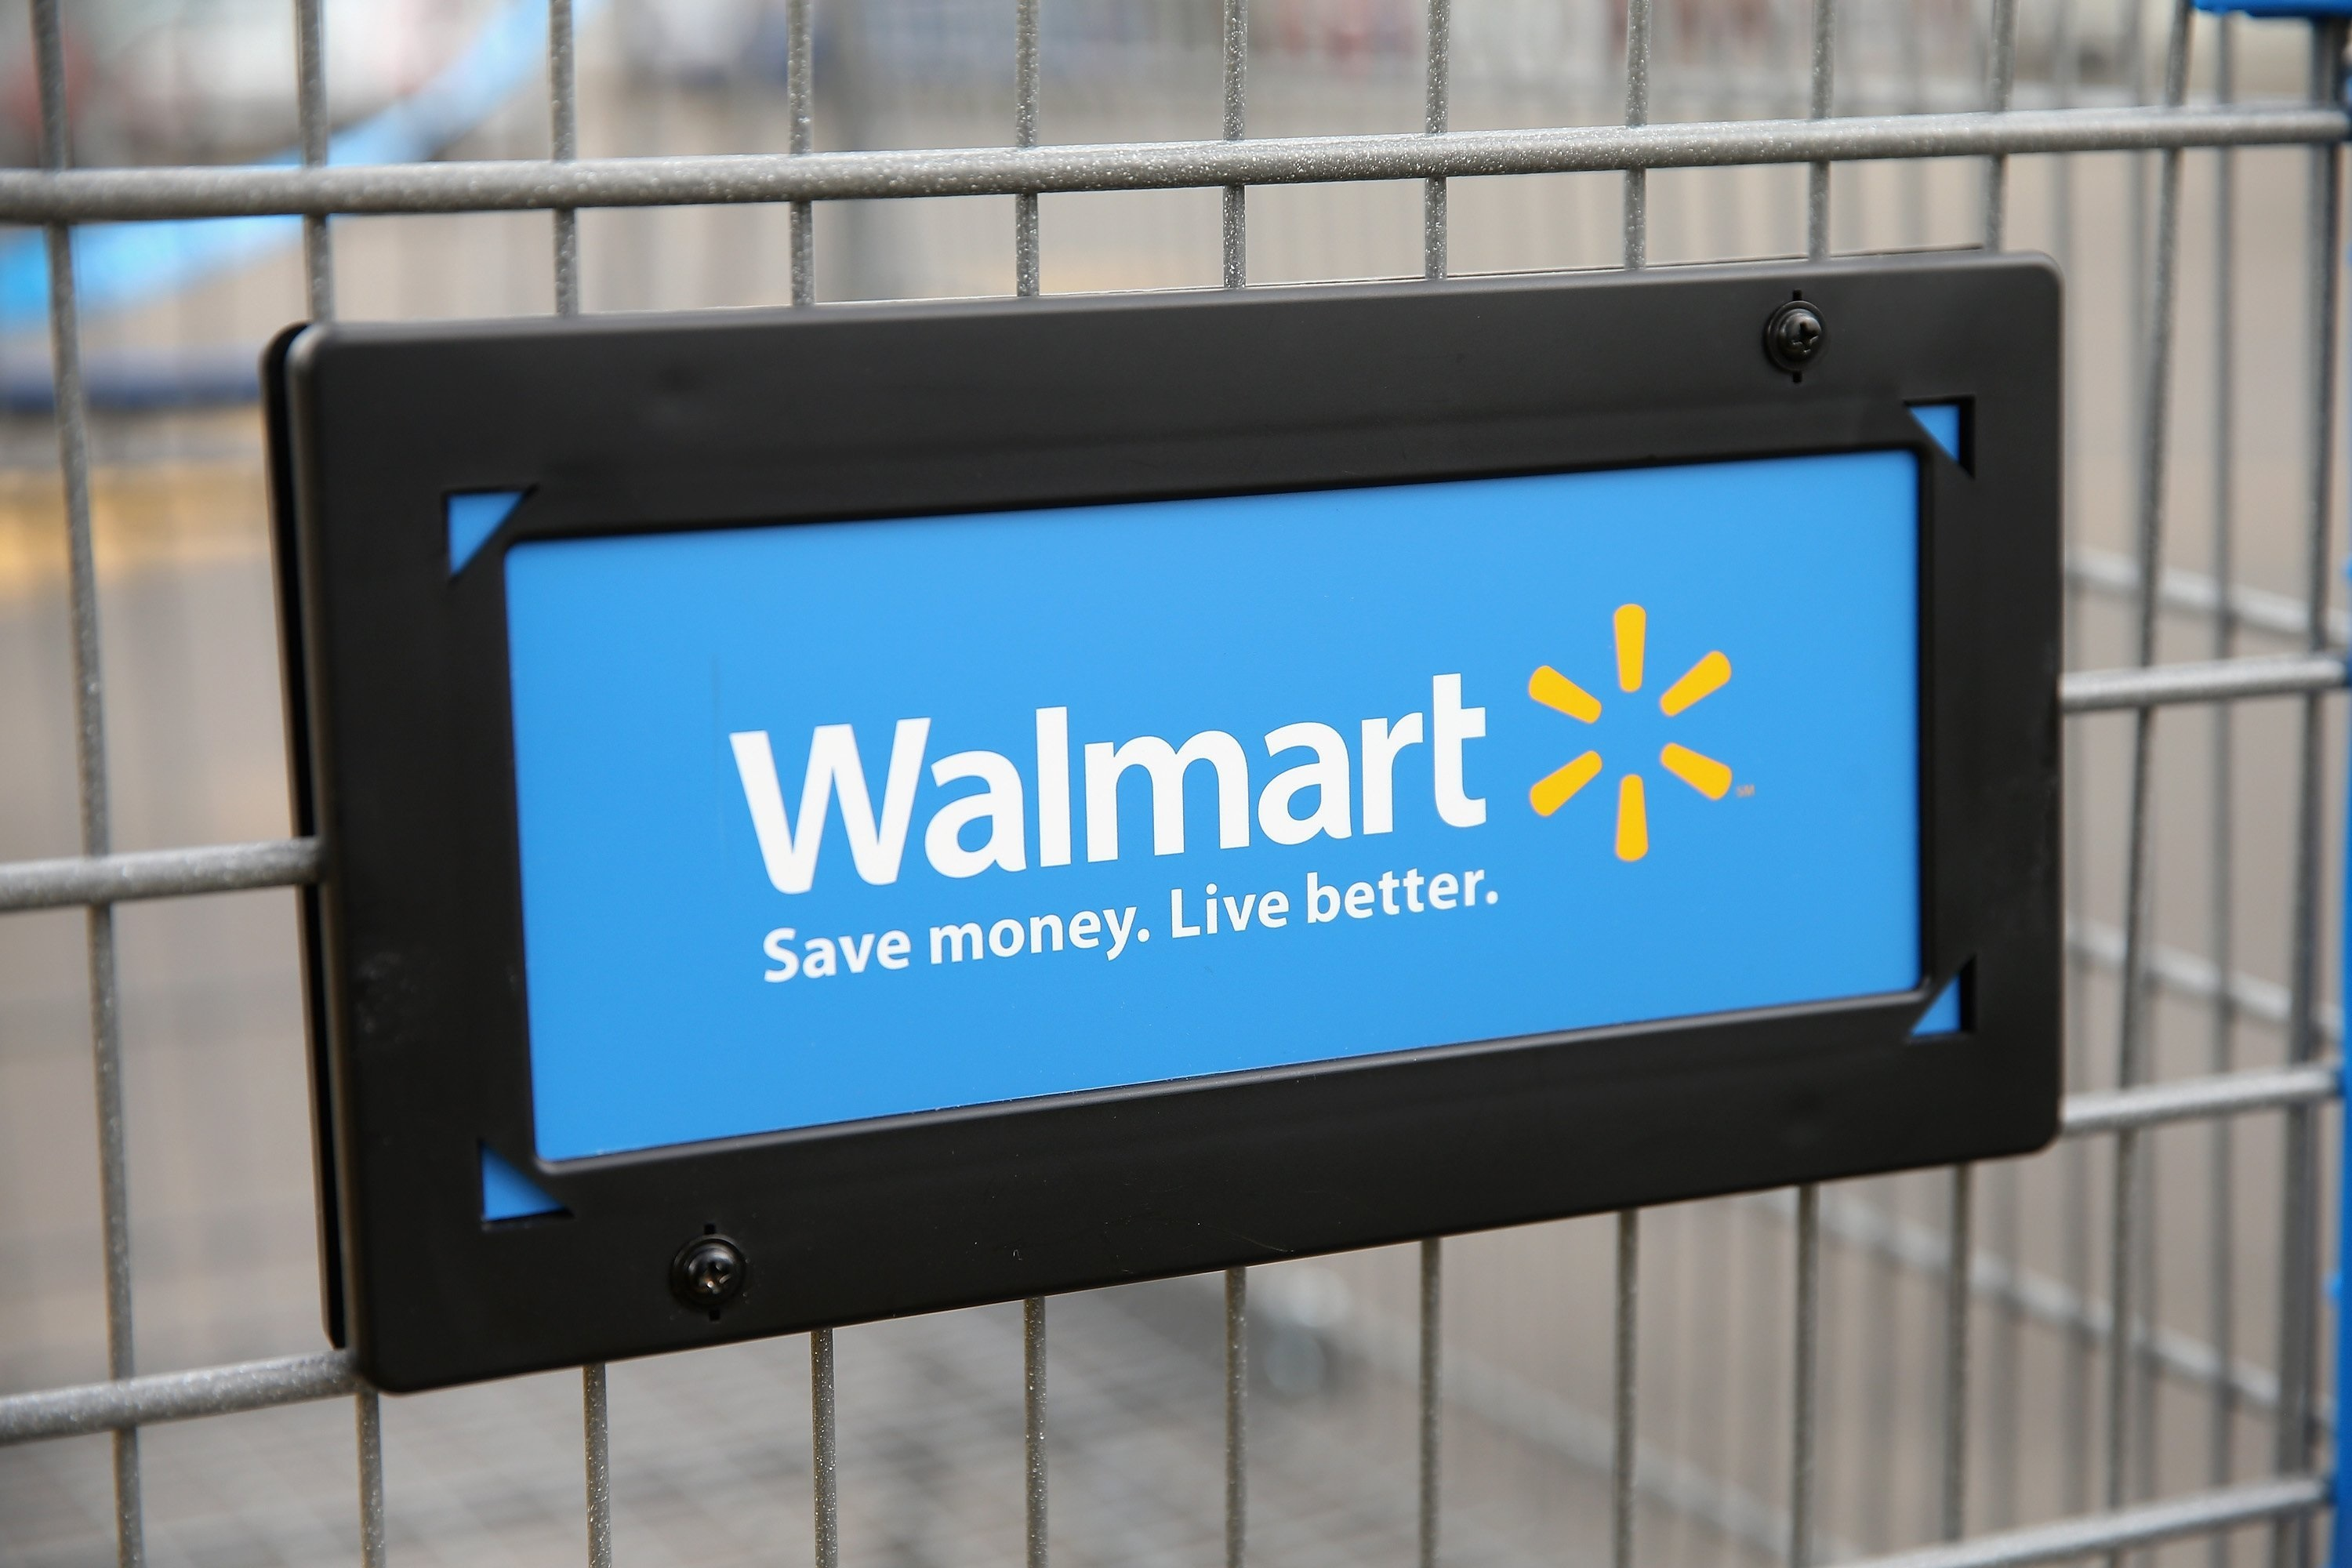 Walmart to Host Free Health Screening Event in AR